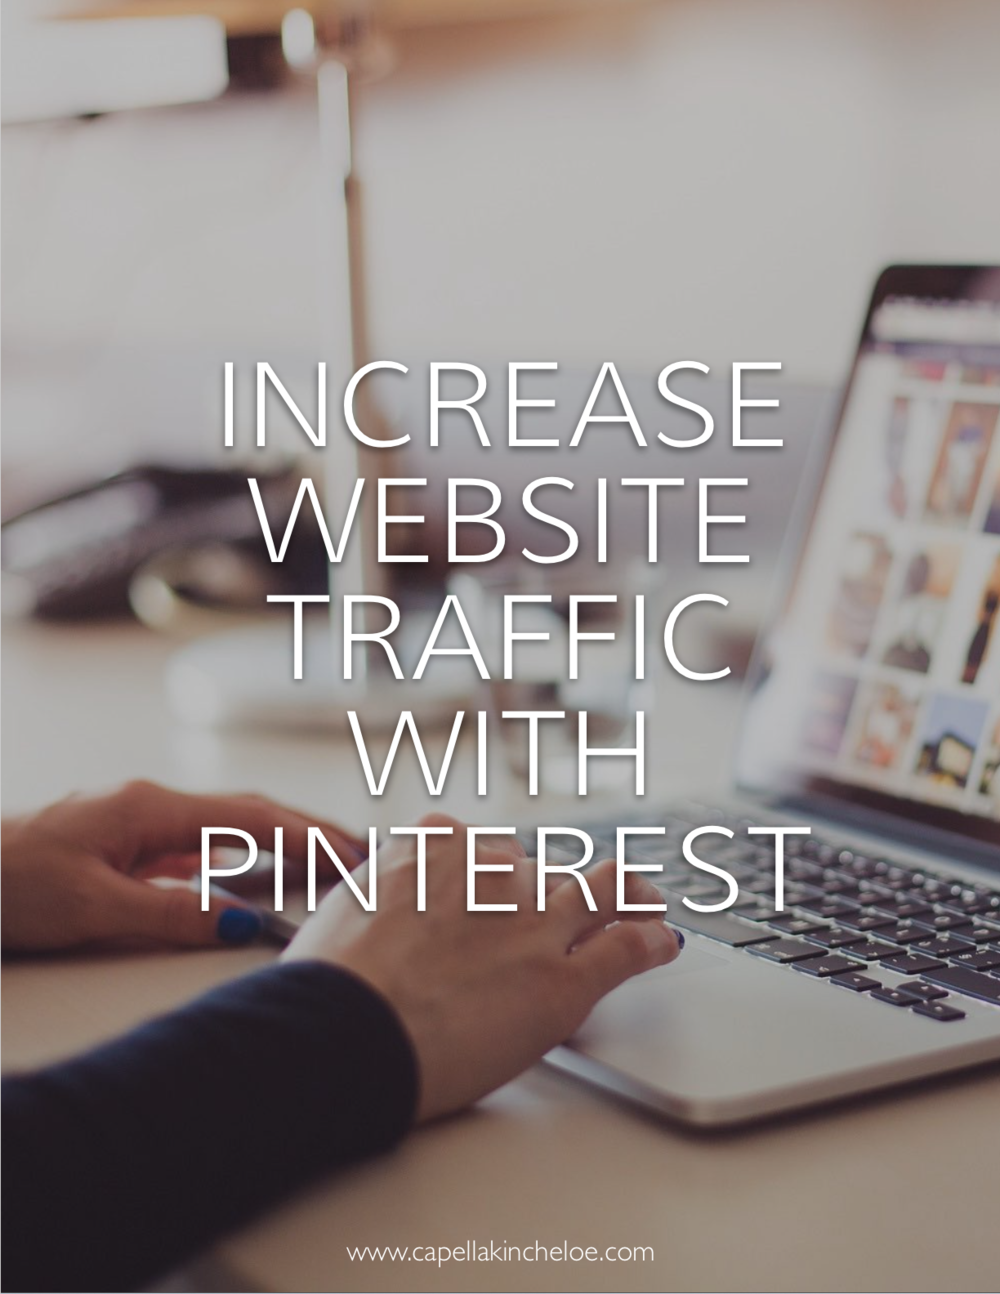 One of the best ways to get traffic to your website is by building up your Pinterest account.  This guide will give you tips on using Pinterest for running your interior design business.